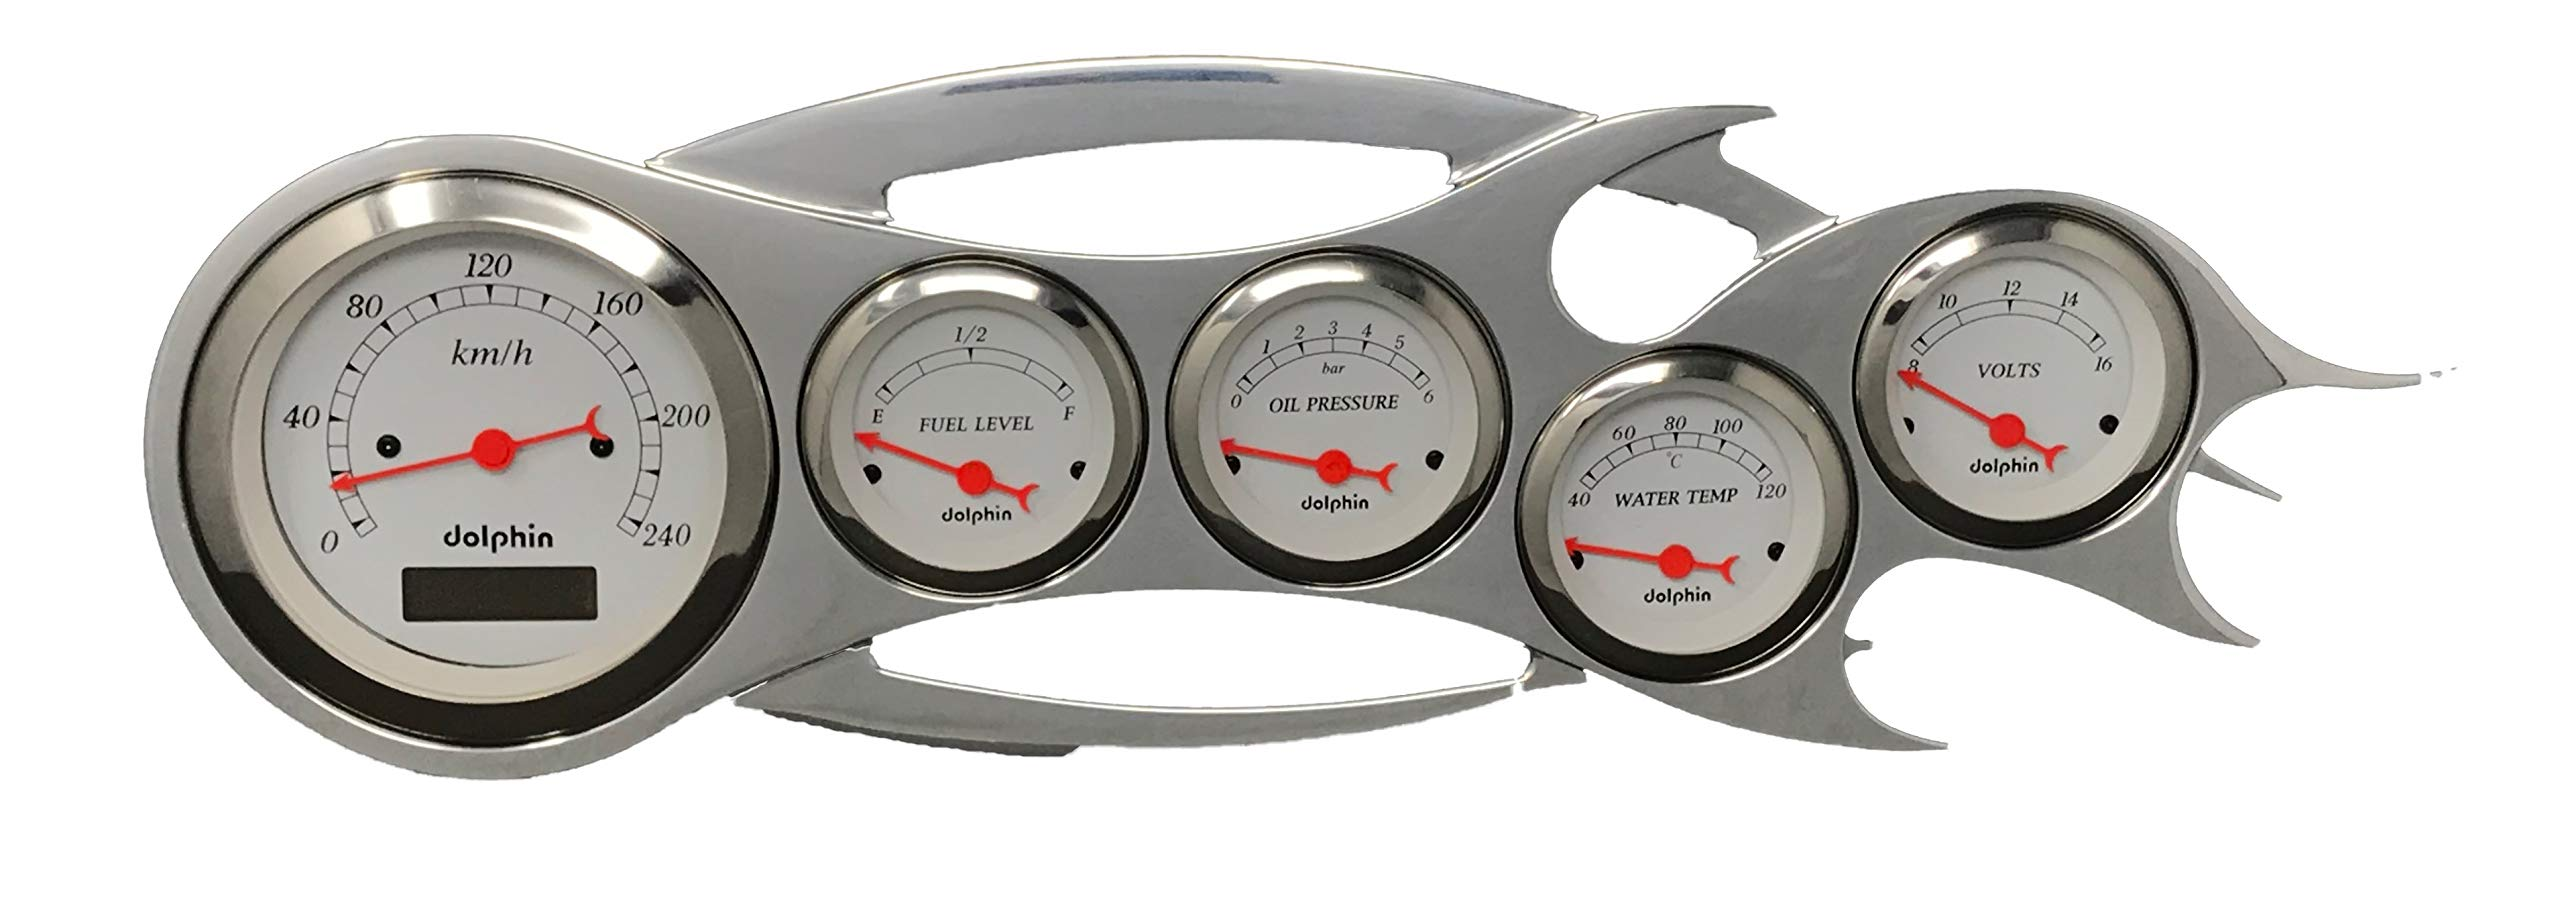 Dolphin Gauges Universal - 5 Gauge Dash Cluster Panel - Metric - Programmable - White by Dolphin Gauges